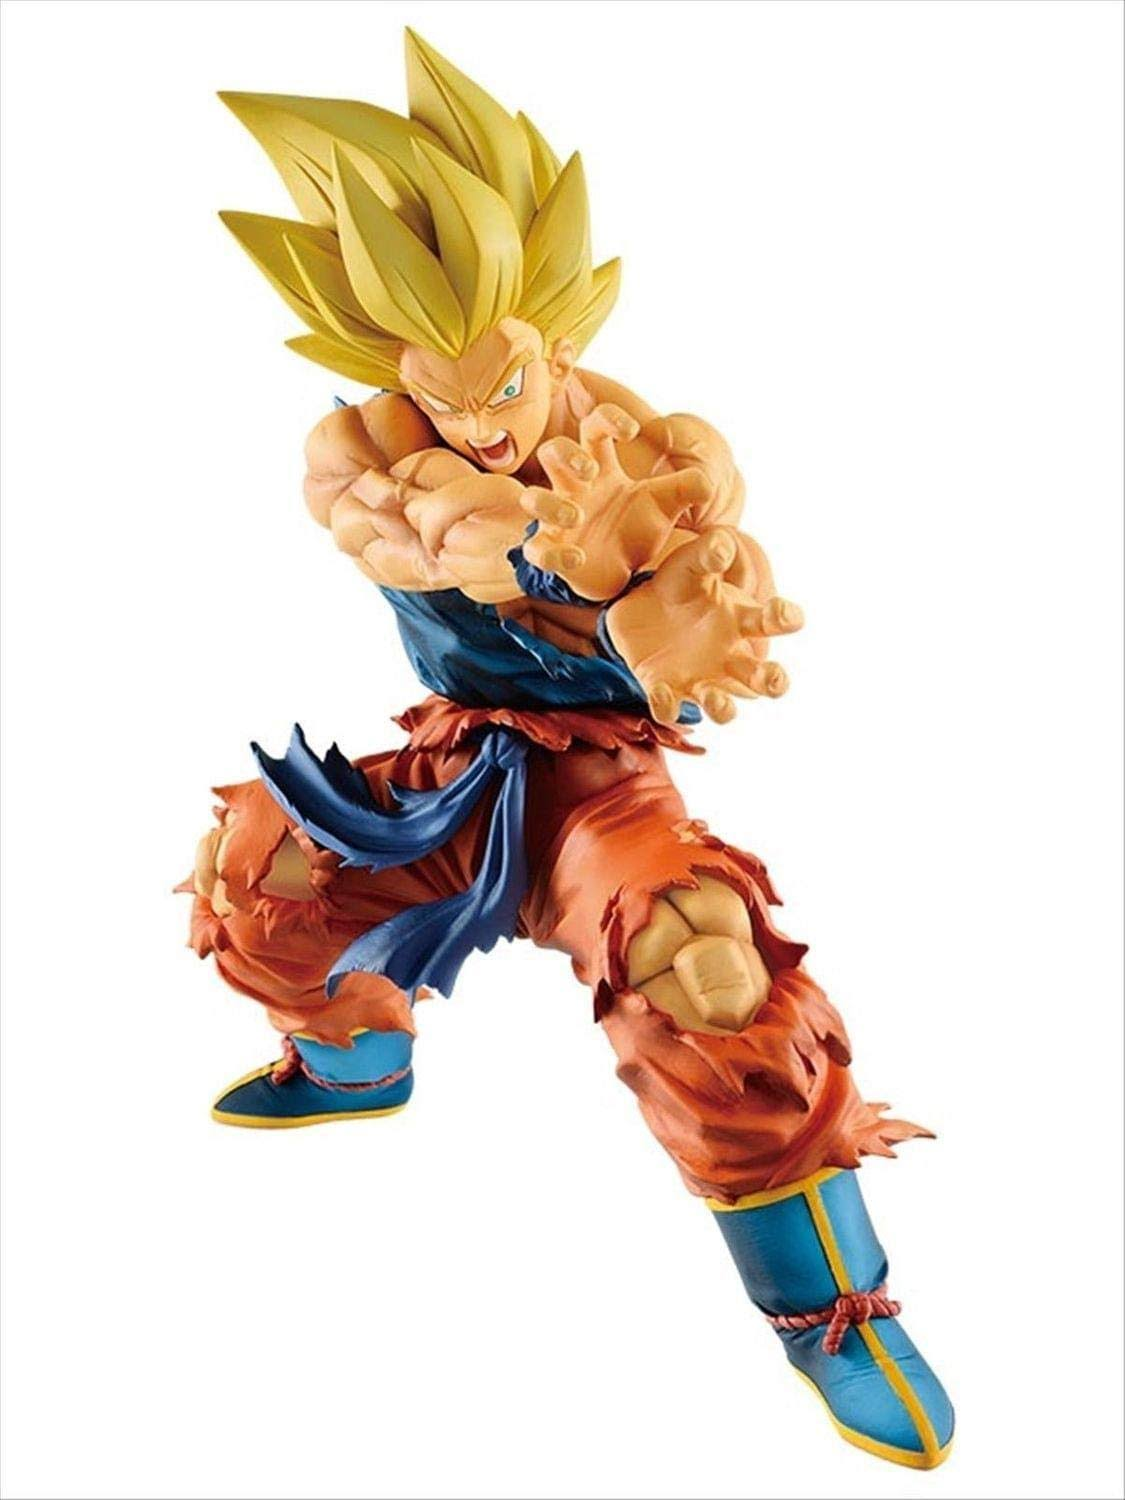 Dragon Ball Legends Super Saiyan Son Goku Kamehameha 6.7 inch PVC Figure